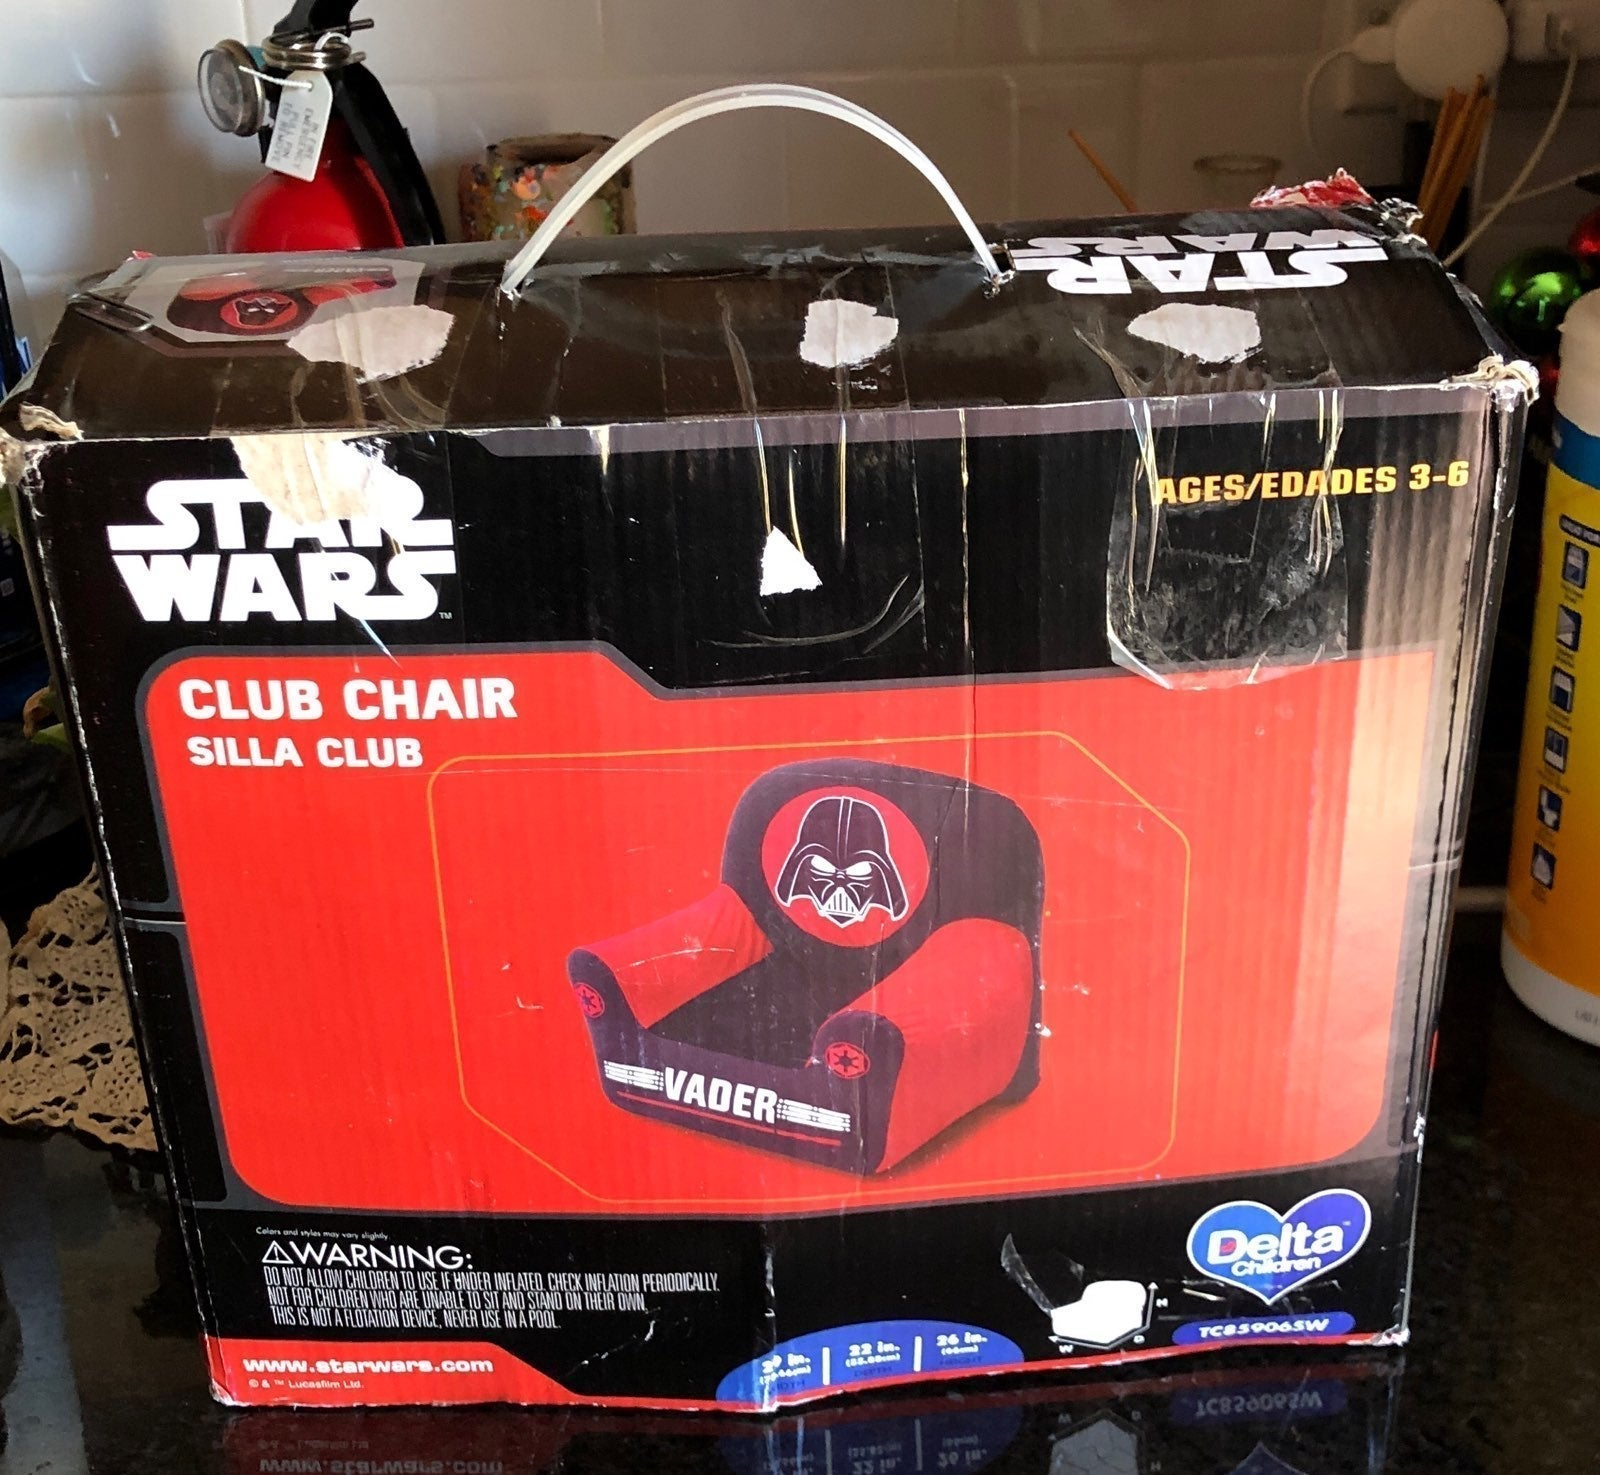 Star Wars Vader club chair